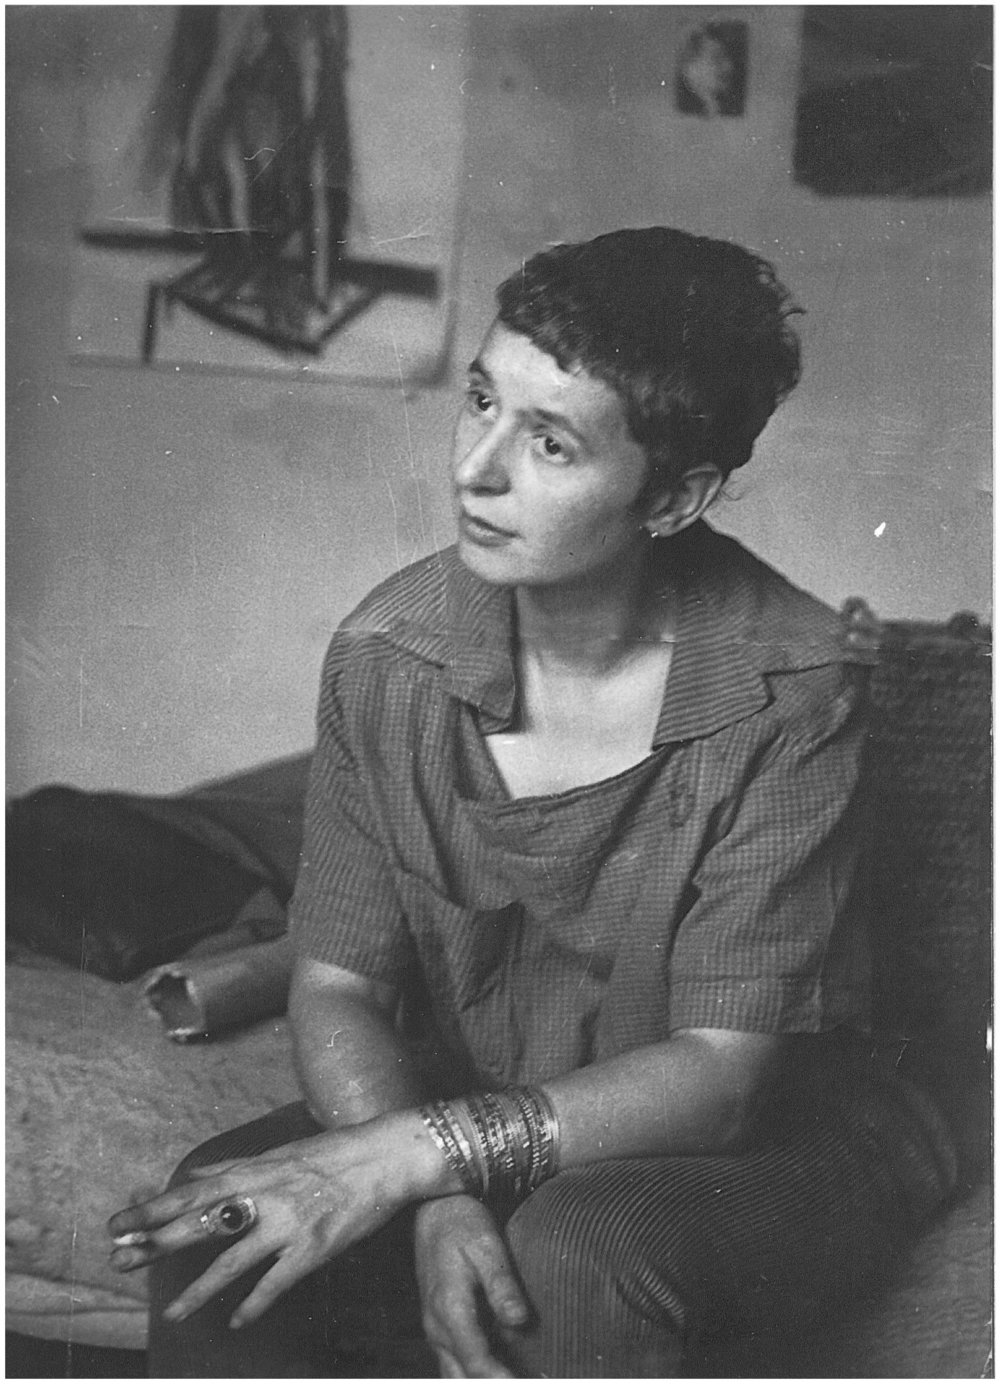 Dorothy Mead, photograph by Bryan Long, courtesy of Val and Bryan Long